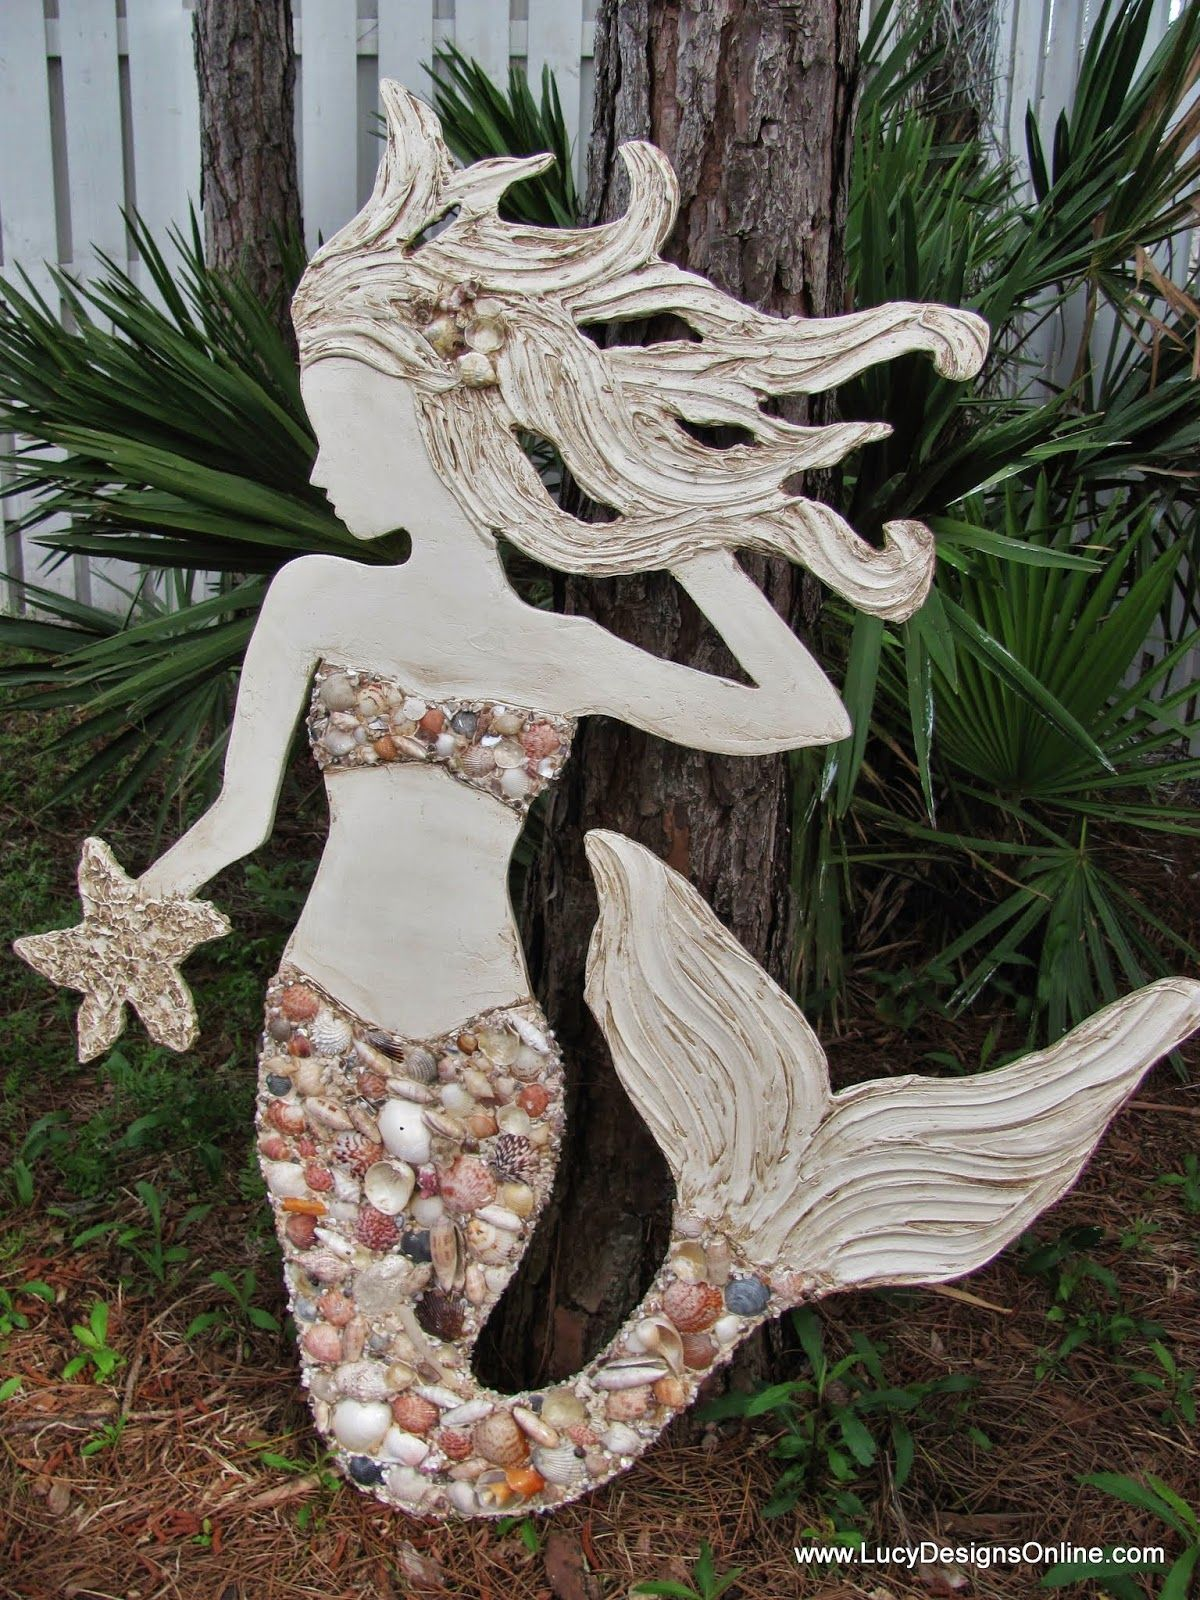 Wooden Mermaid Wall Art make a wood mermaid for wall decor + diy + inside decor or porch +